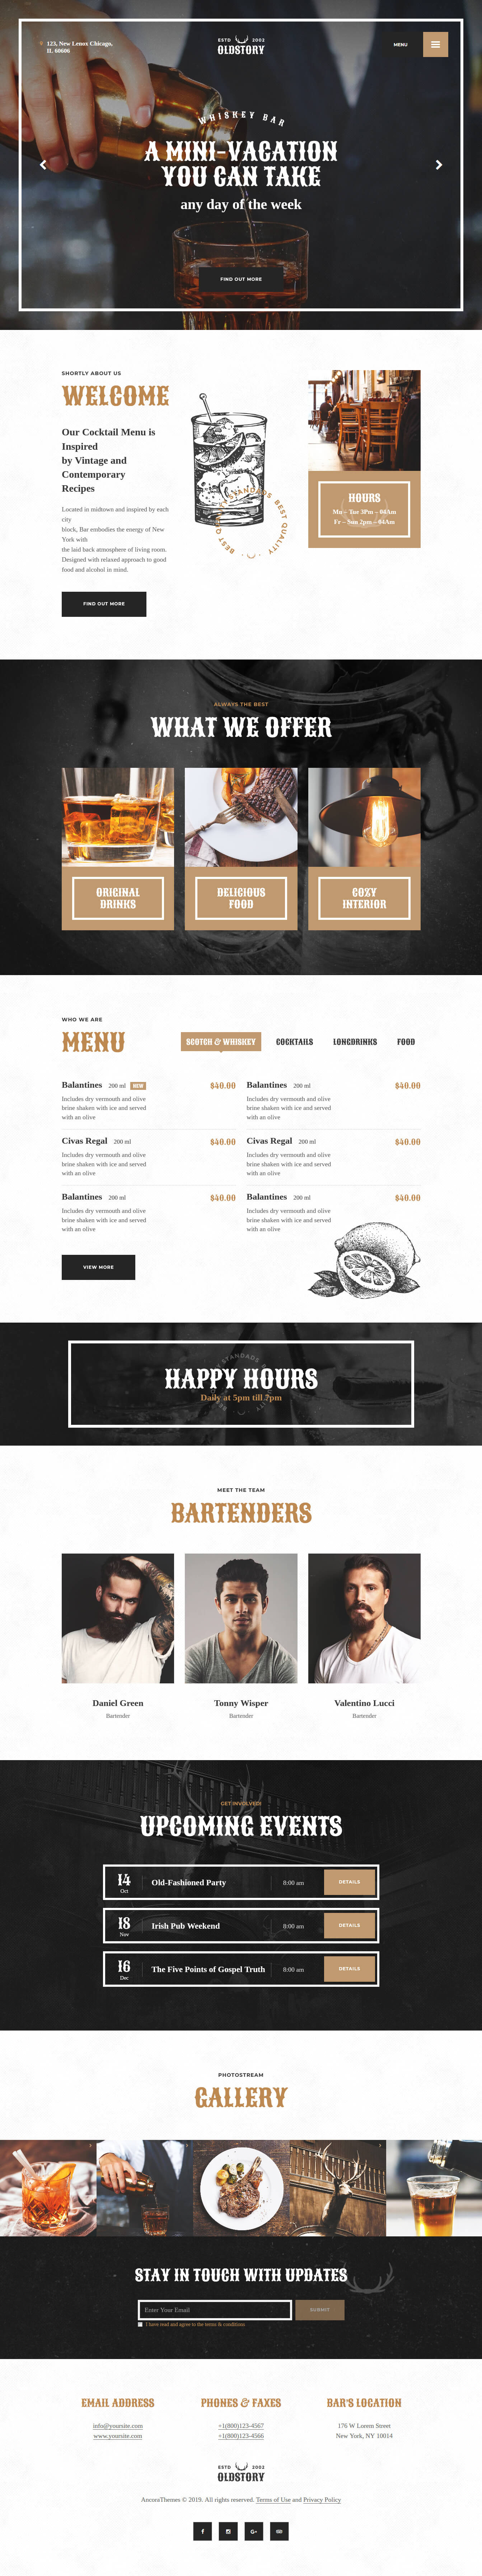 Old Story - Best Free Bar and Pub WordPress Theme